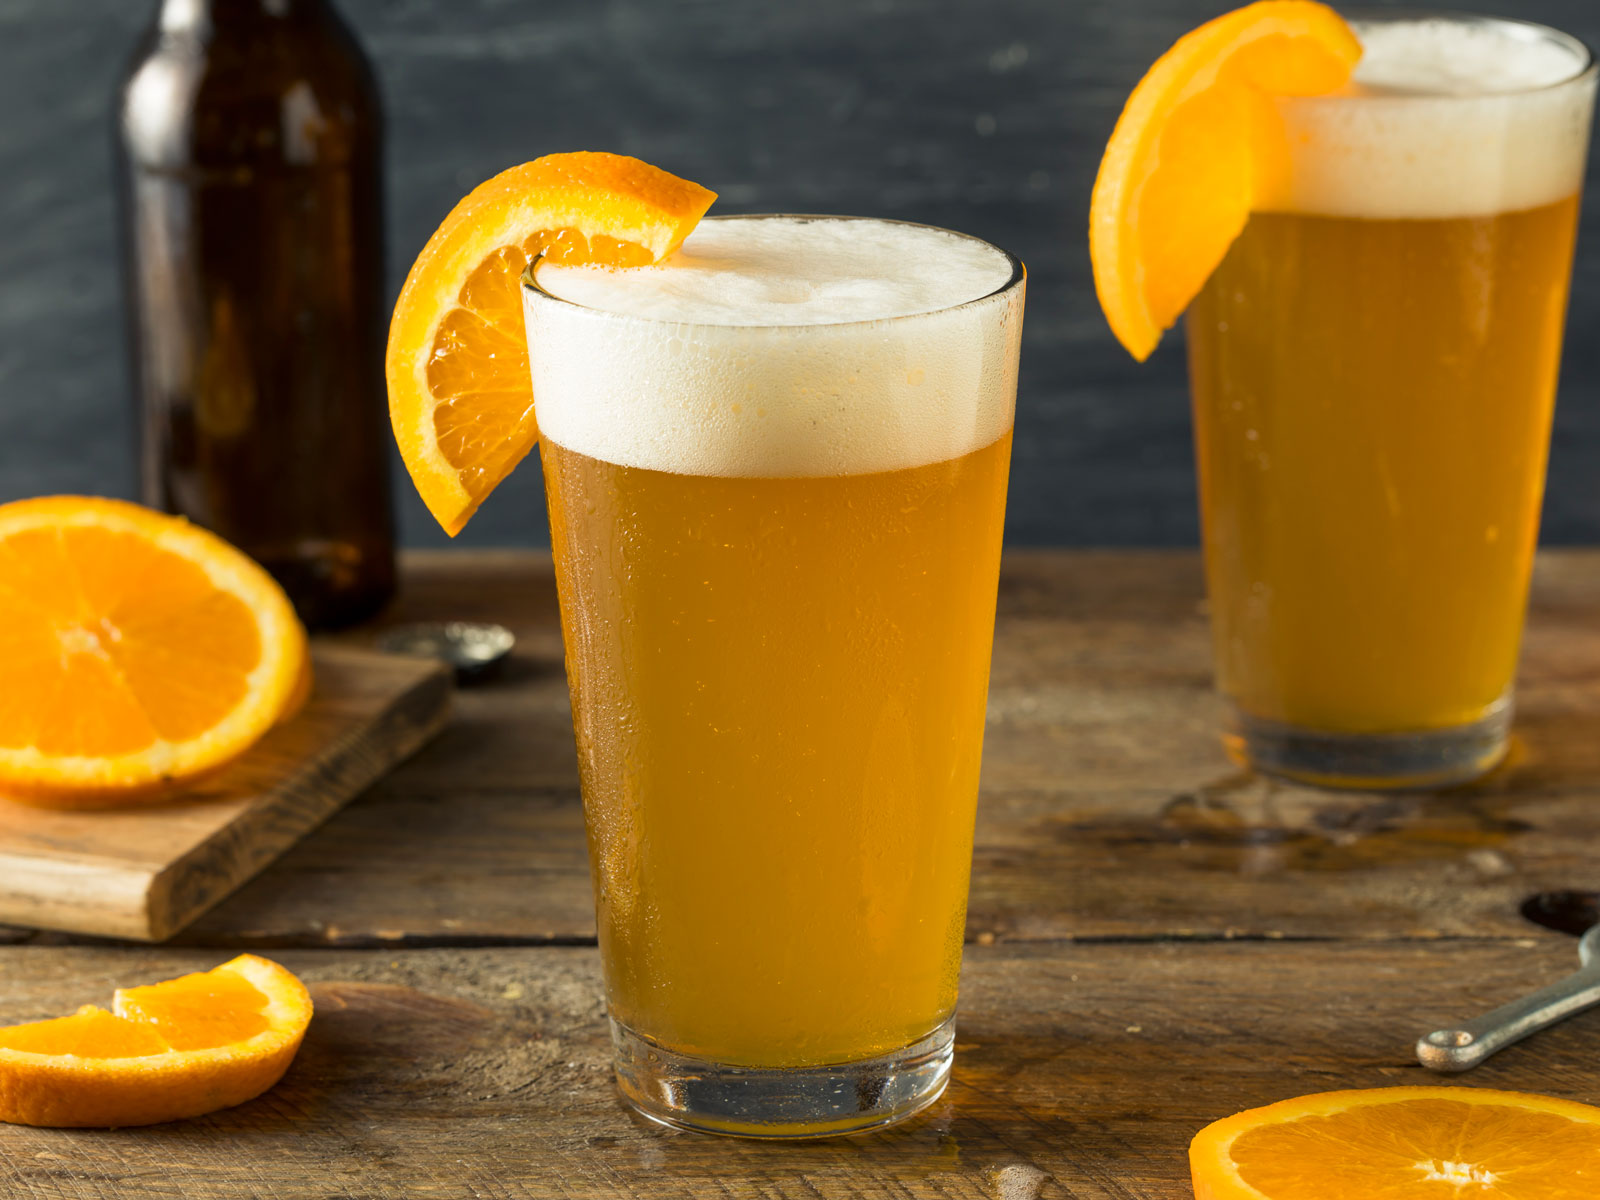 Blue Moon Creator Is Coming Out With A Weed Beer In Colorado